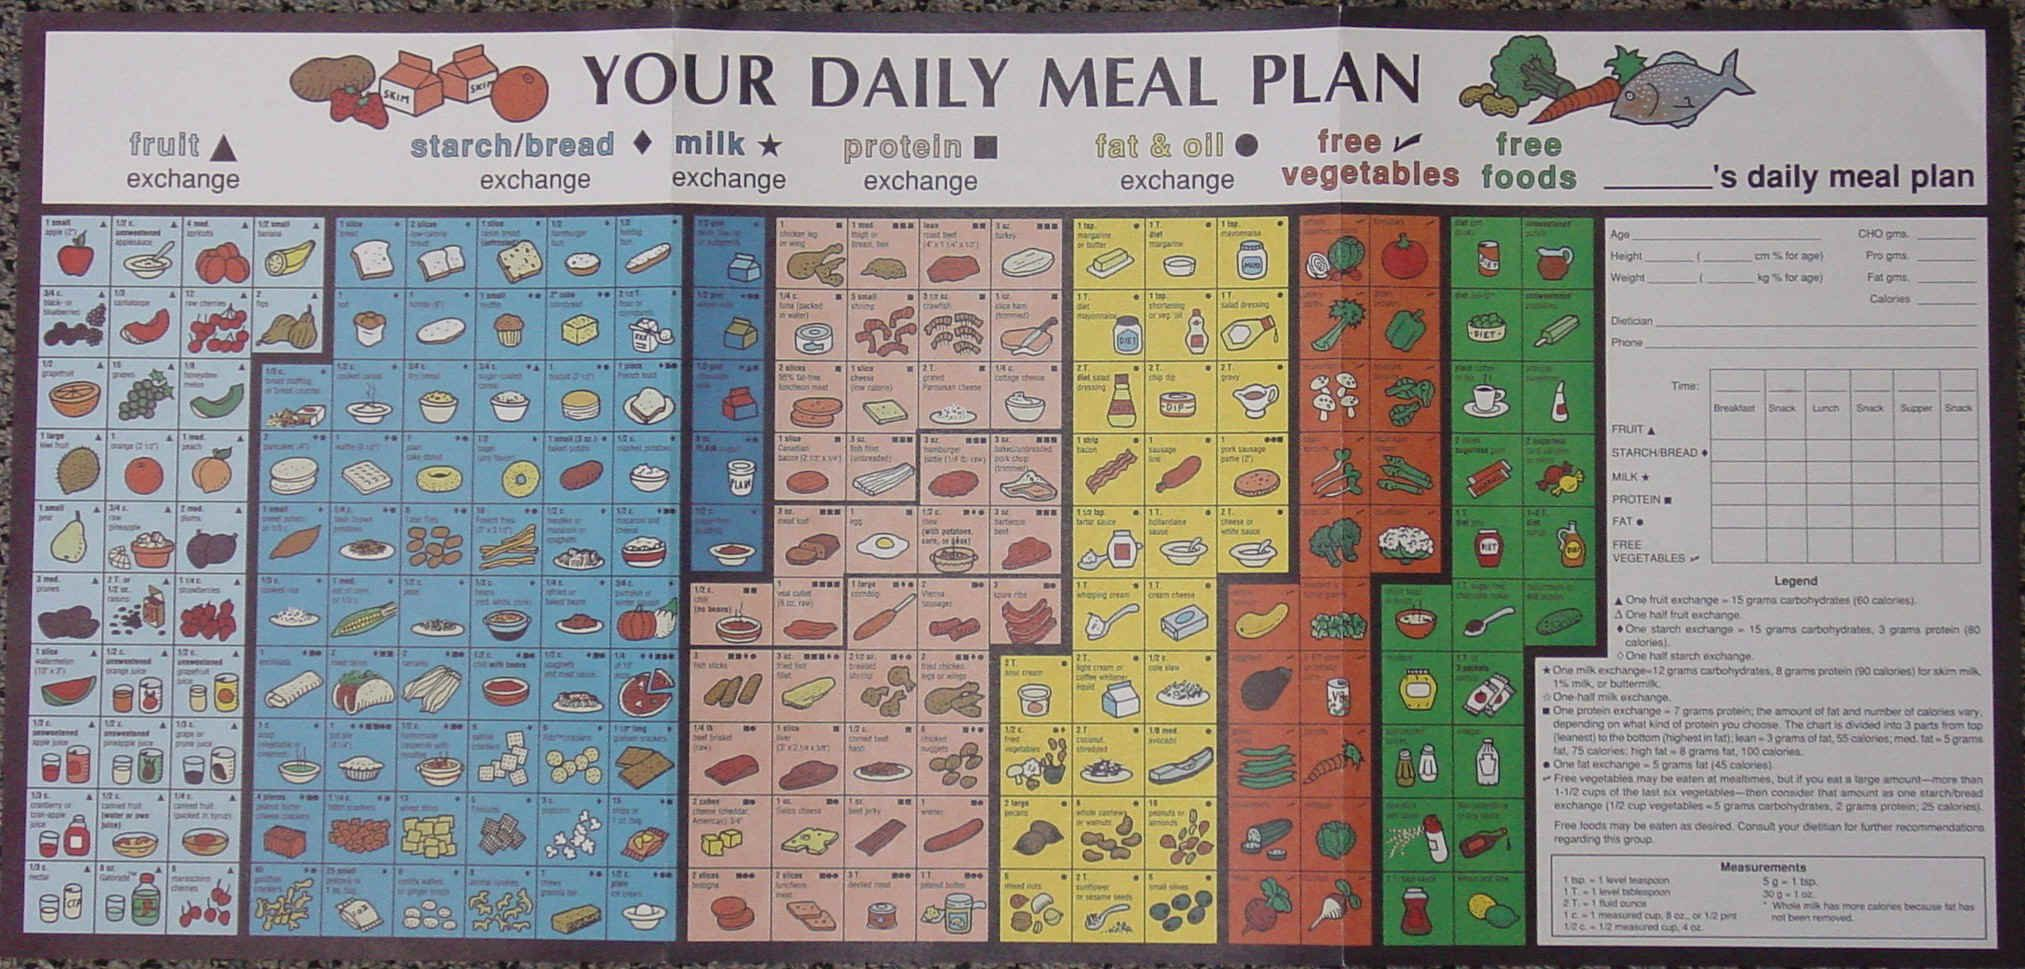 diabetic meal charts: Gestational diabetic meals meal plan visit the image link more